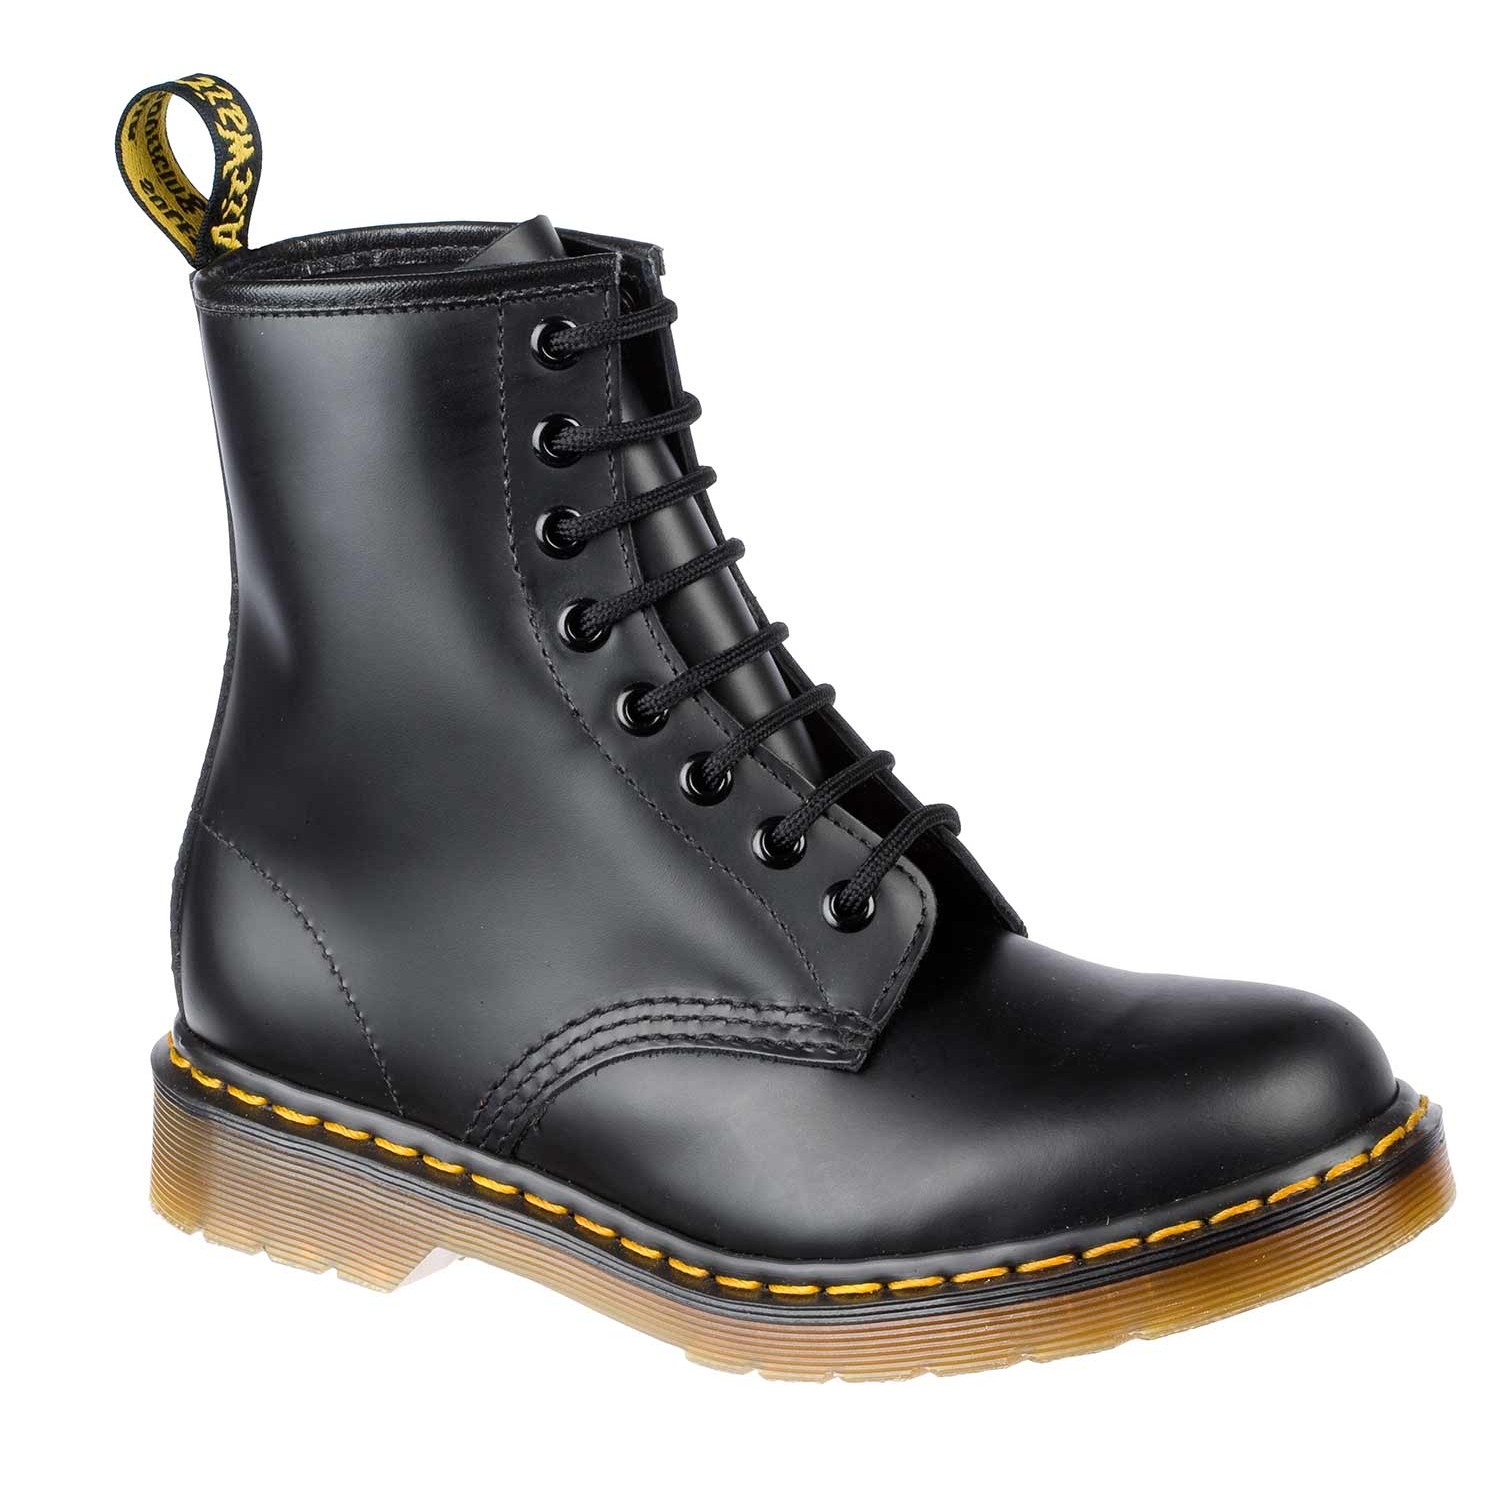 dr martens doc 1460 boots stiefel 8 loch lederstiefel 10072004 schwarz. Black Bedroom Furniture Sets. Home Design Ideas